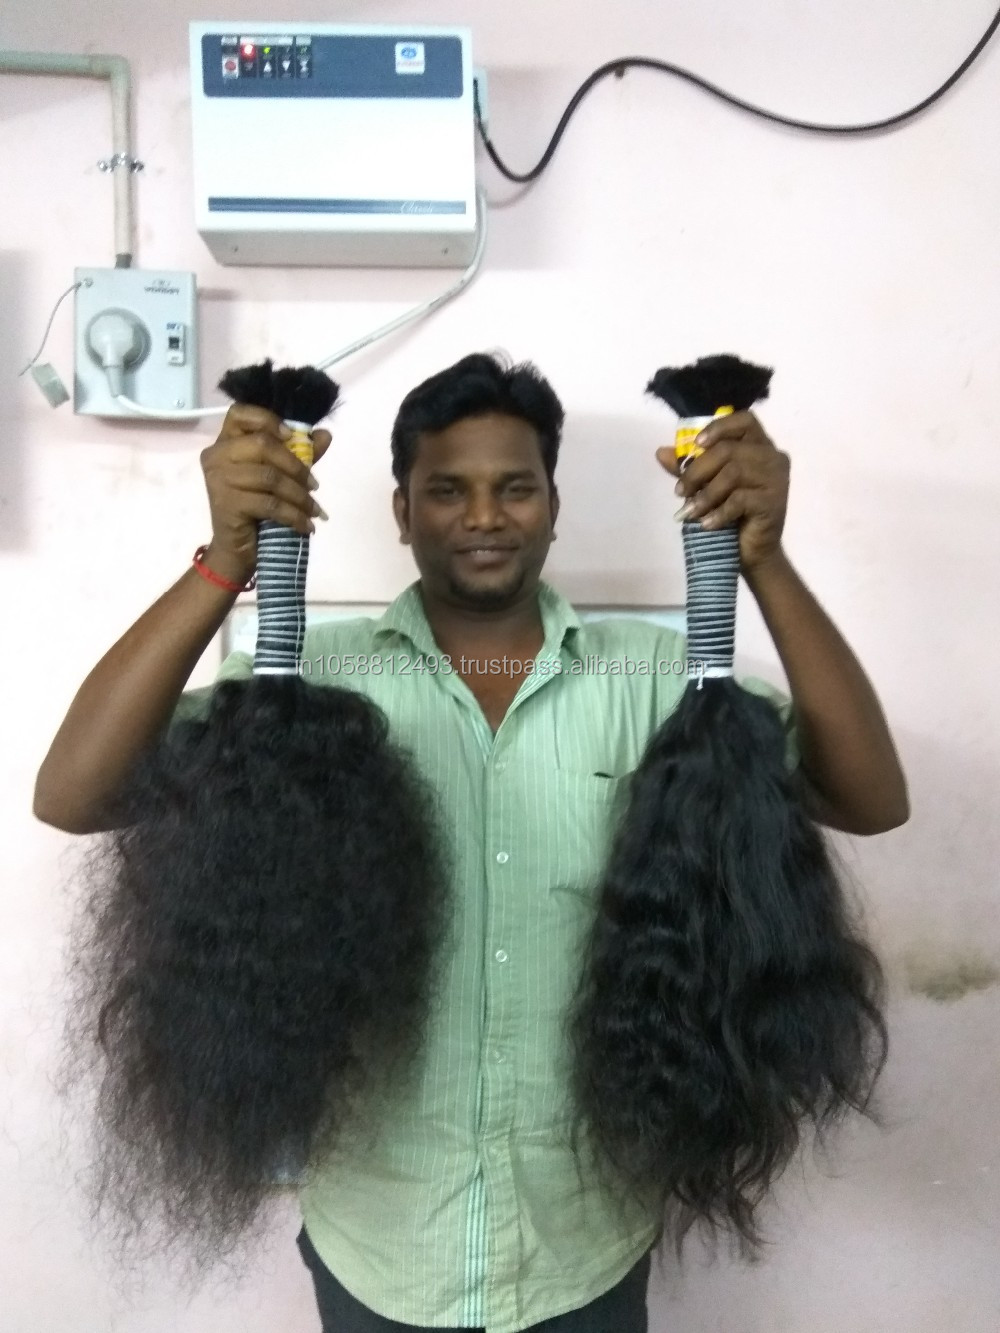 Christmas offer Discount price virgin brazilian hair and indian human hair from Dev hair exports chennai india